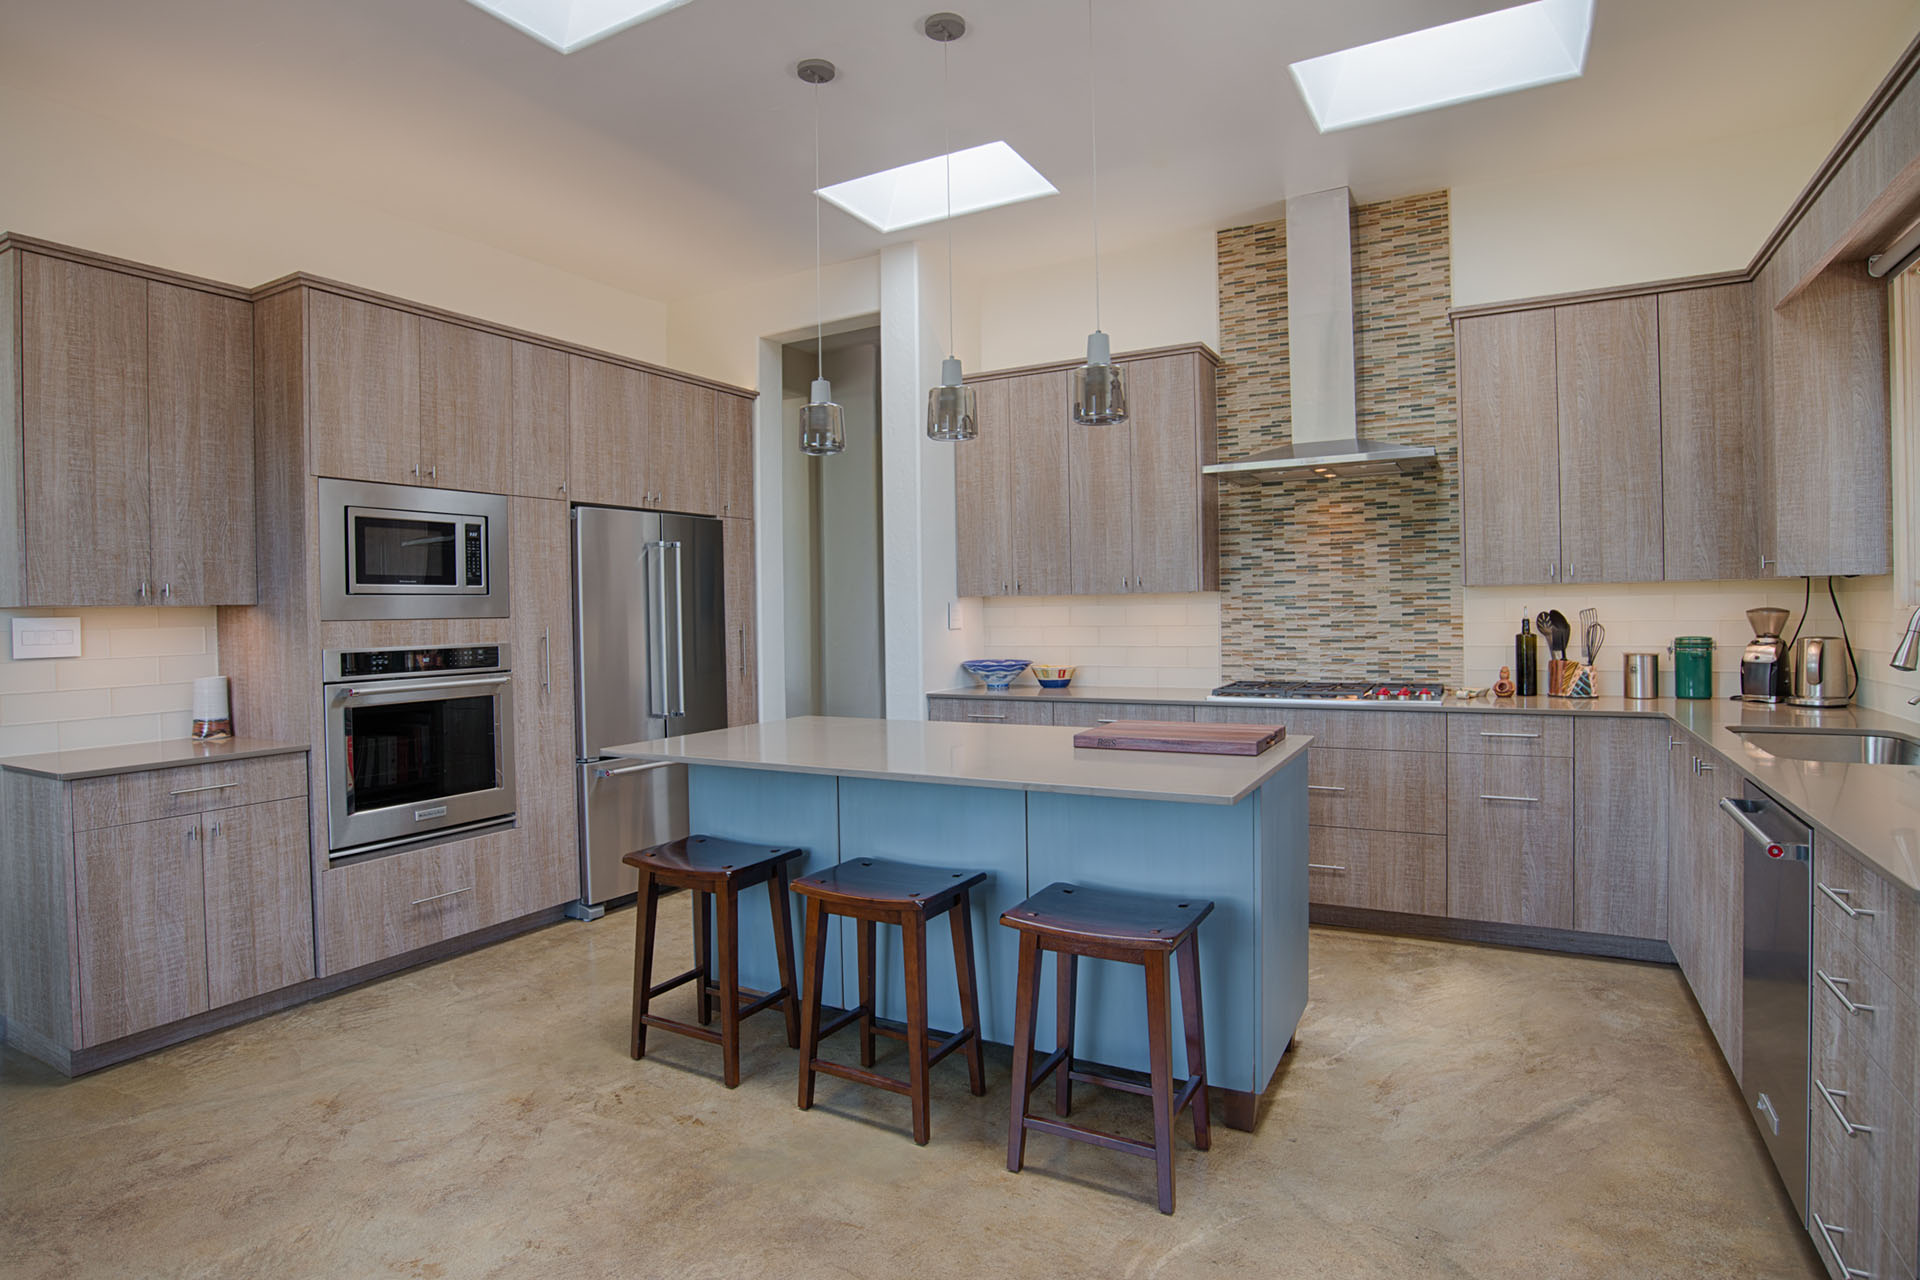 Douglas Maah Construction, kitchen remodeling in Santa Fe, NM